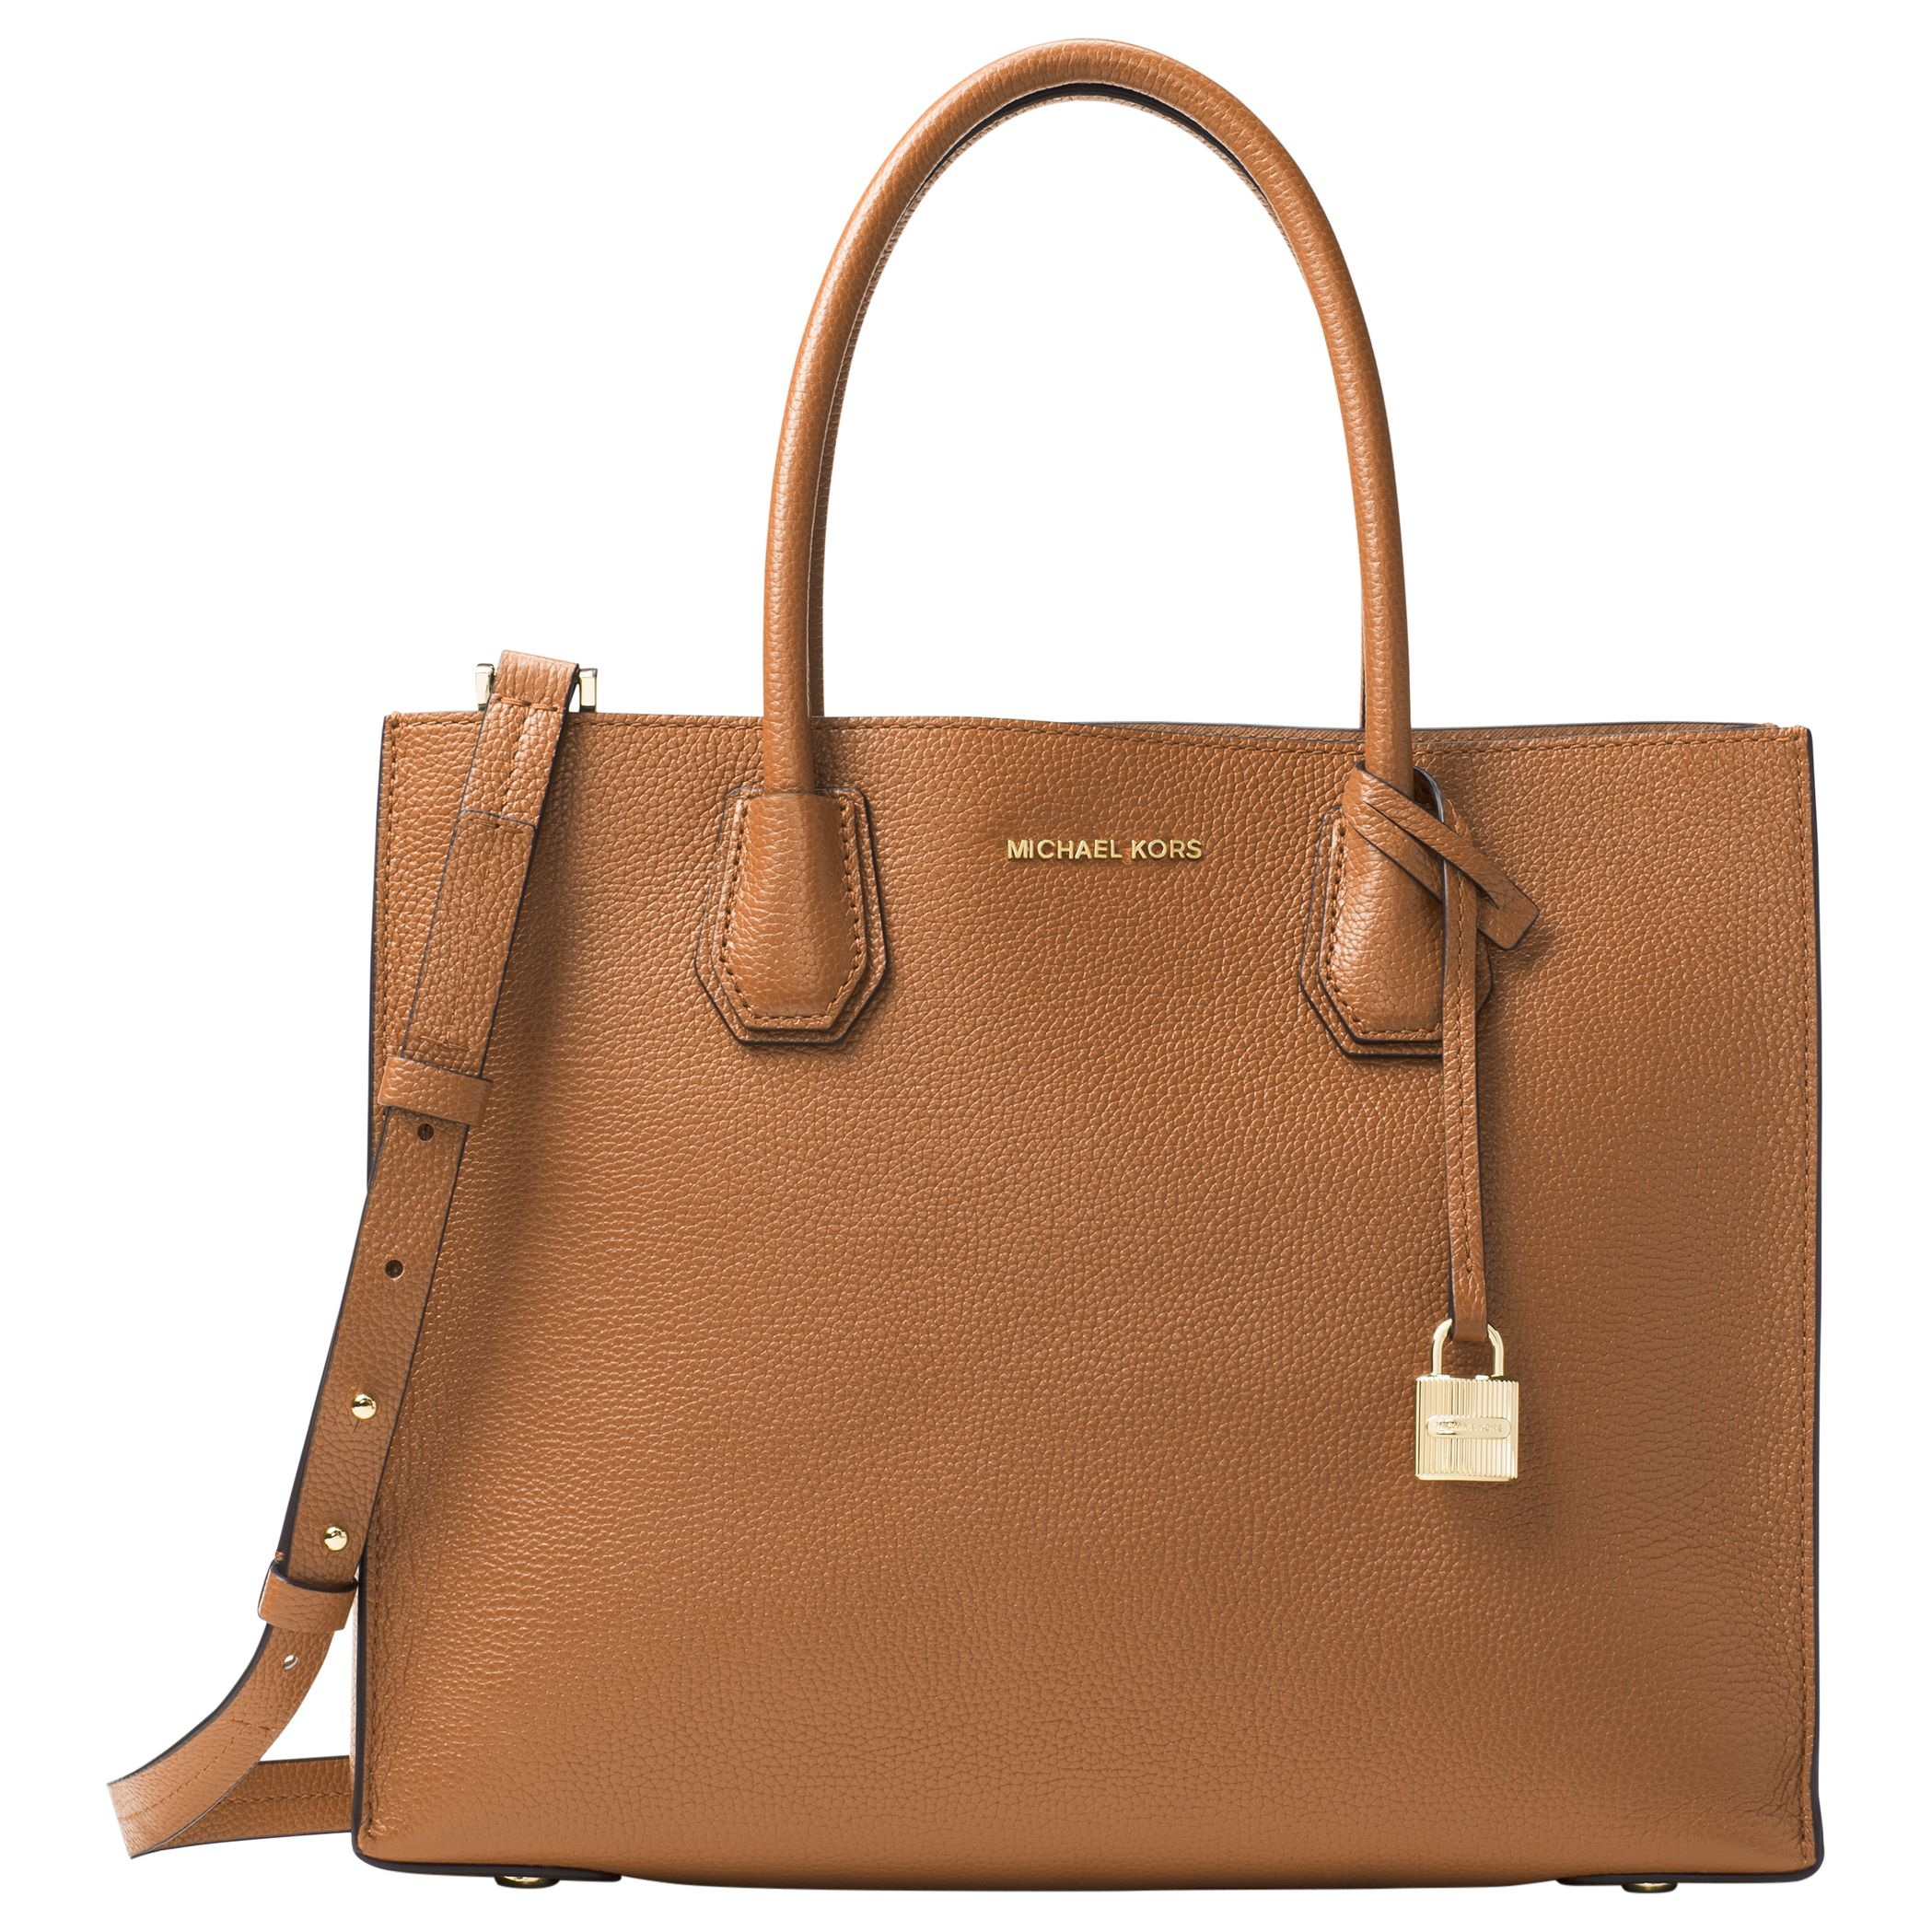 751966c88894 MICHAEL Michael Kors Mercer Large Leather Tote Bag at John Lewis ...